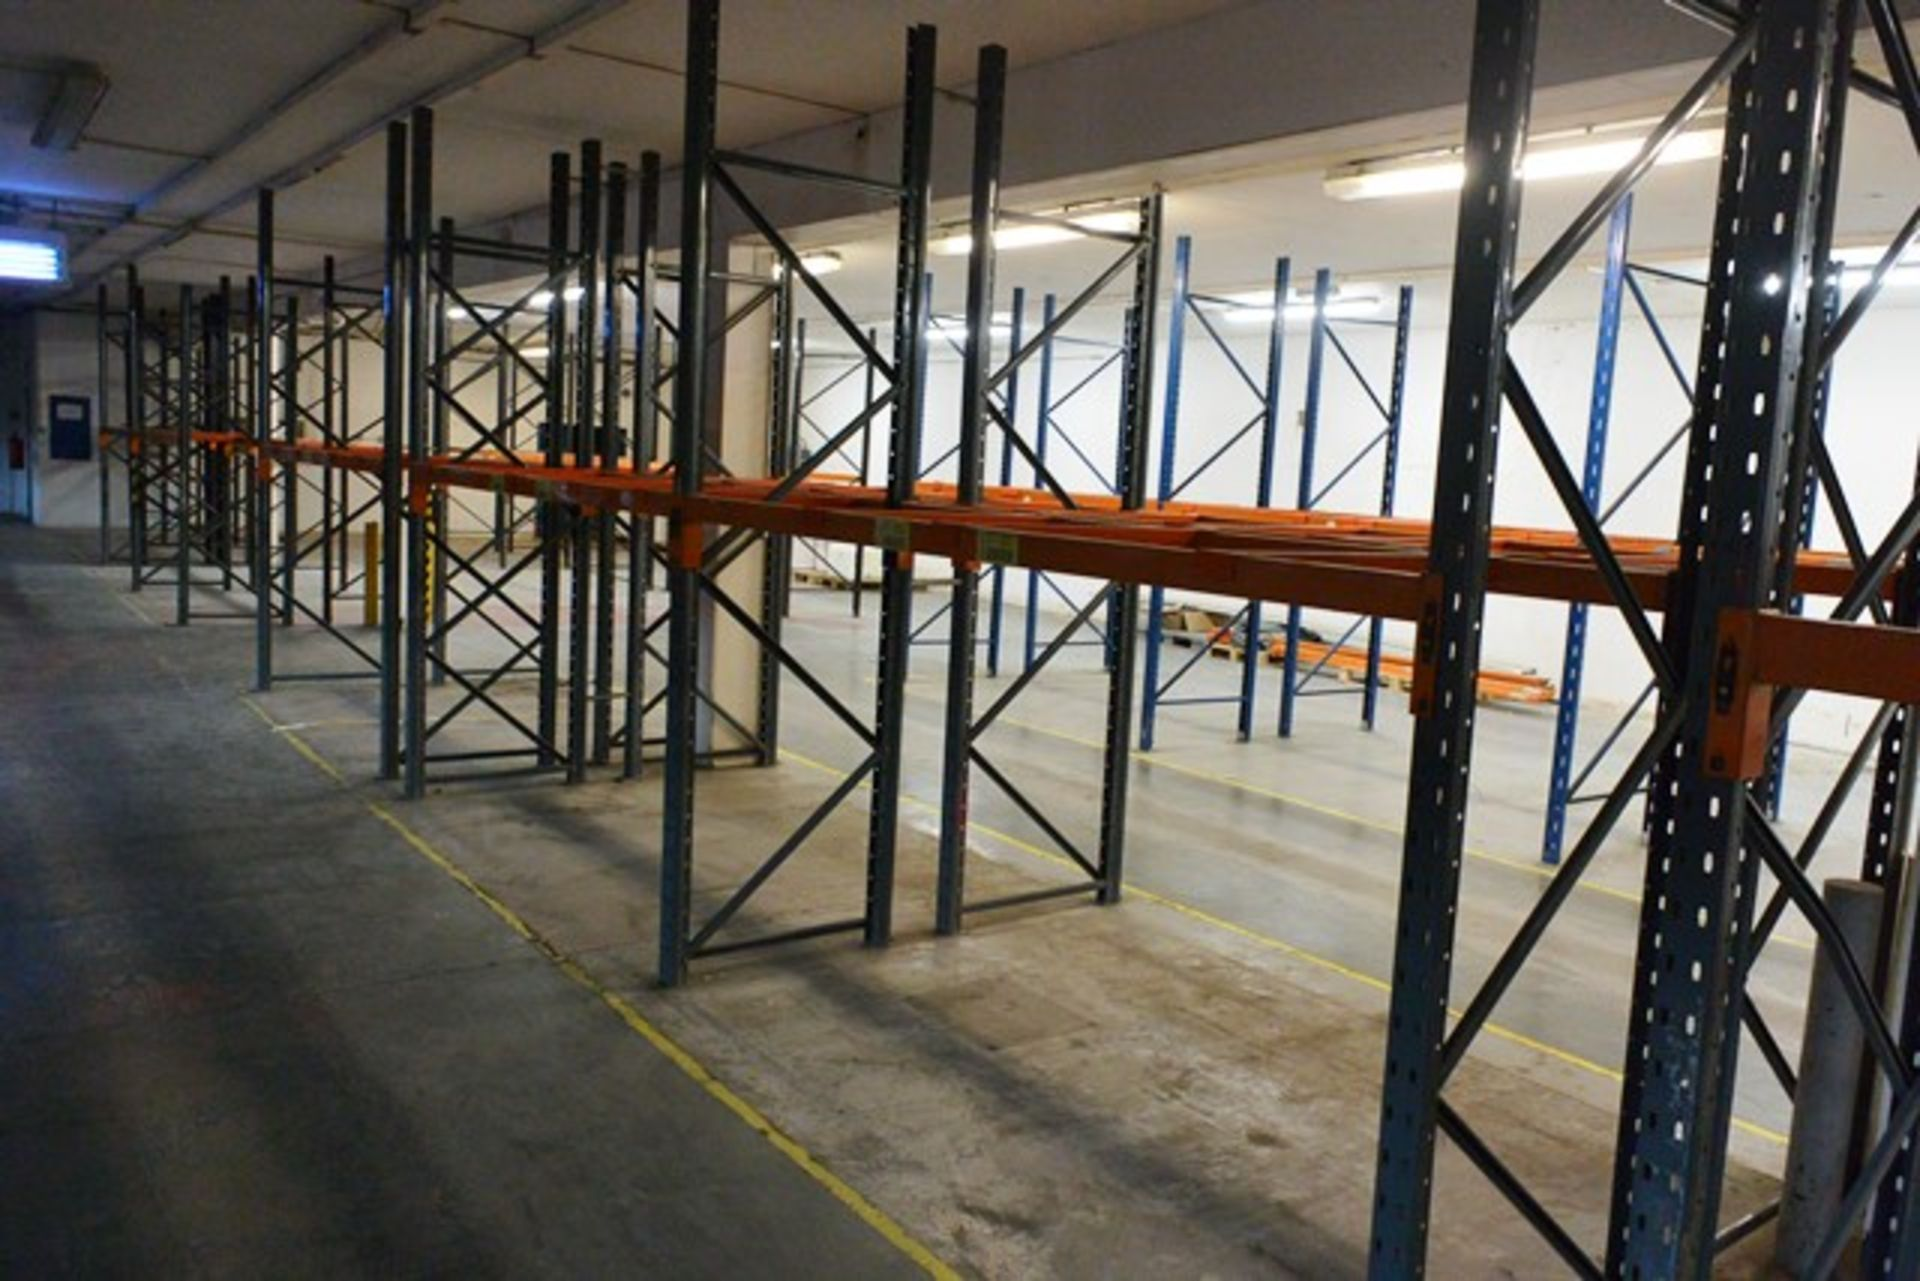 Five bays of adjustable boltless pallet racking, approx height 2700 - 3000mm, 2750mm width per